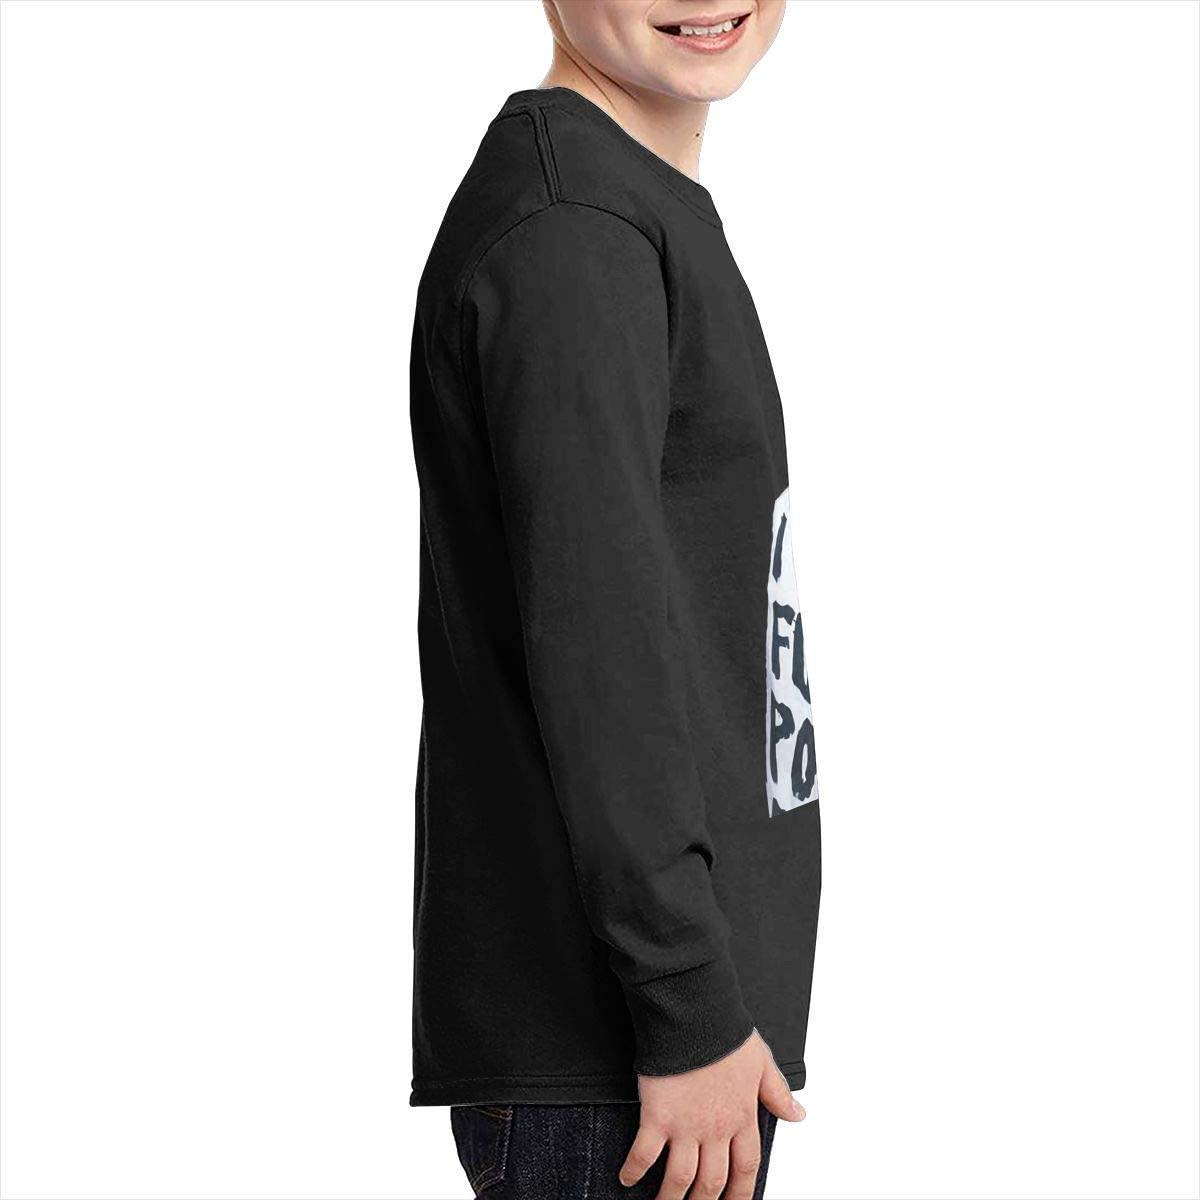 Kilsd Boys /& Girls Junior Particular Cardi B Long Sleeve T Shirt Black